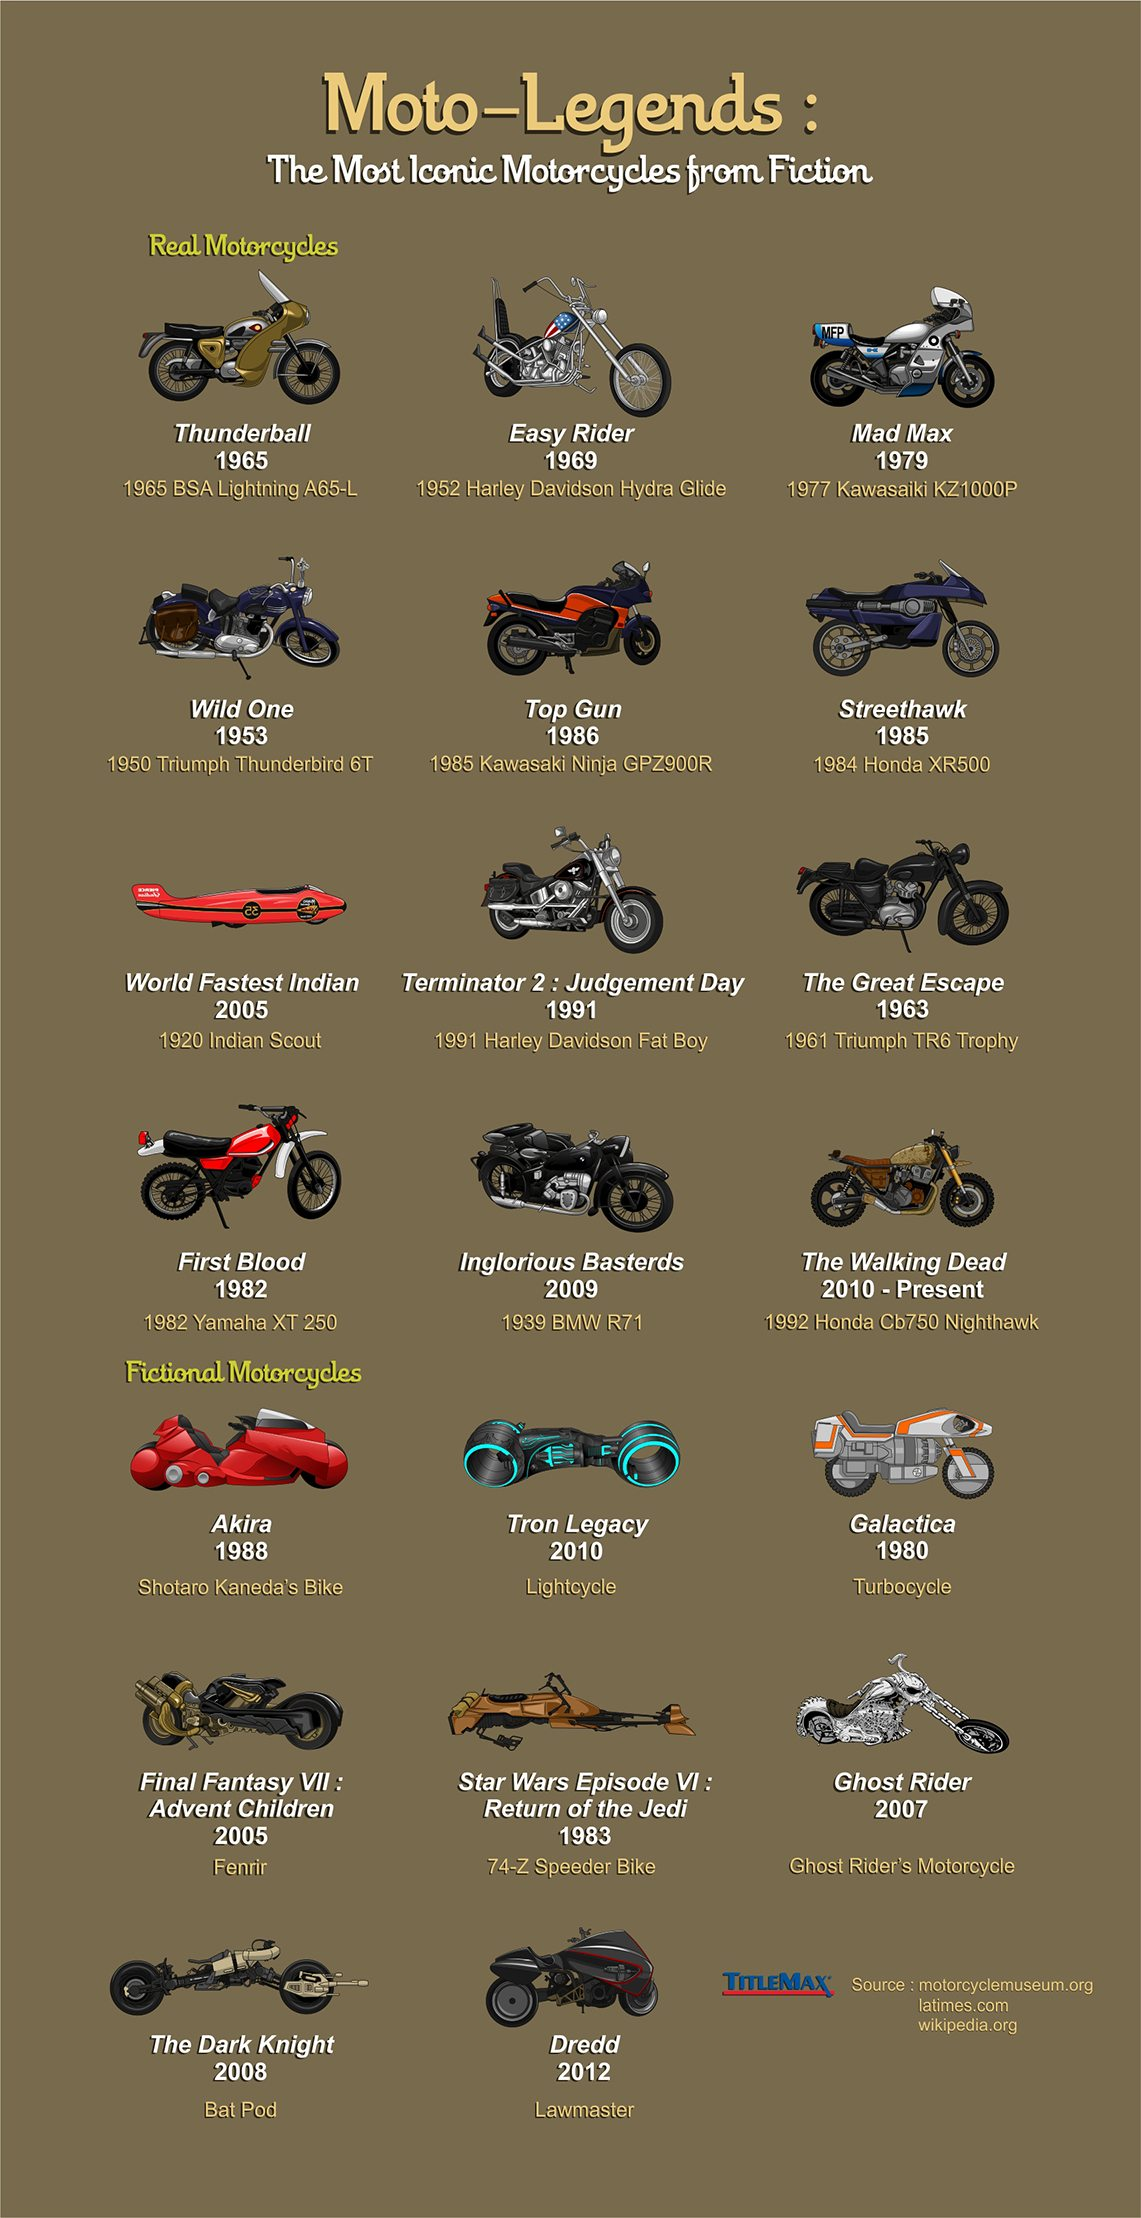 The Most Iconic Motorcycles from Fiction by Titlemax